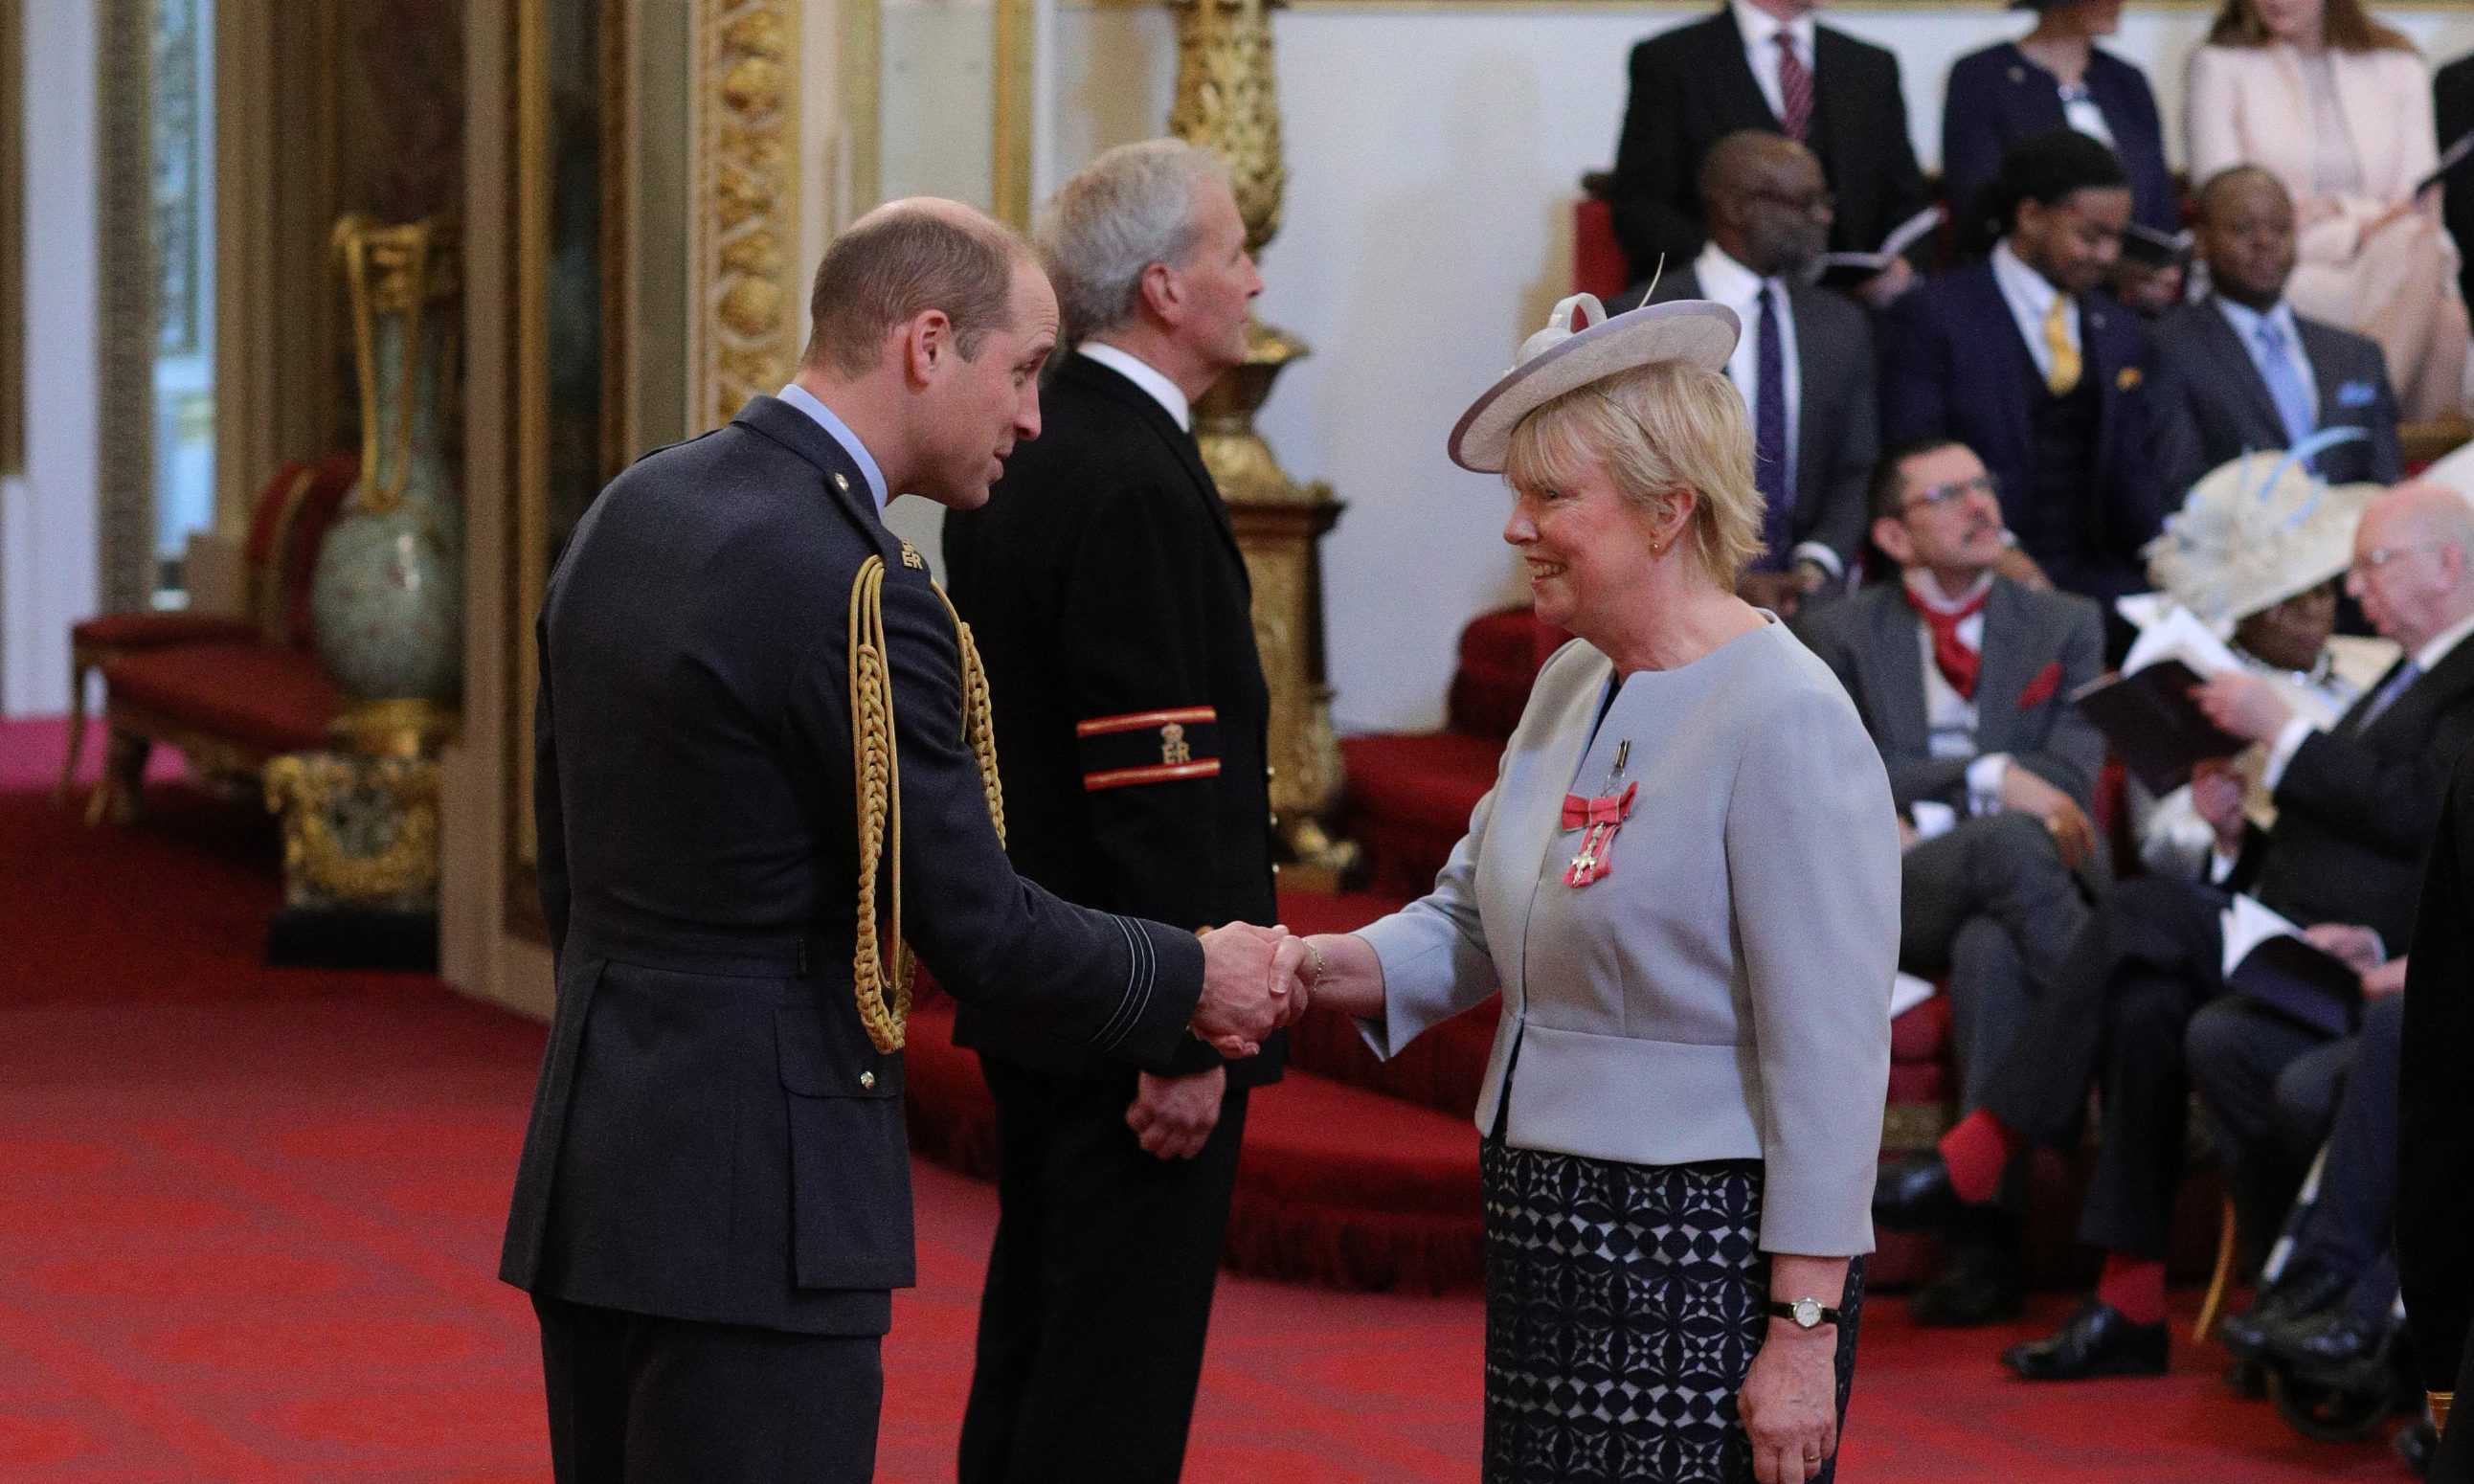 Elaine Wyllie from Burntisland is made an MBE (Member of the Order of the British Empire) by the Duke of Cambridge at Buckingham Palace.